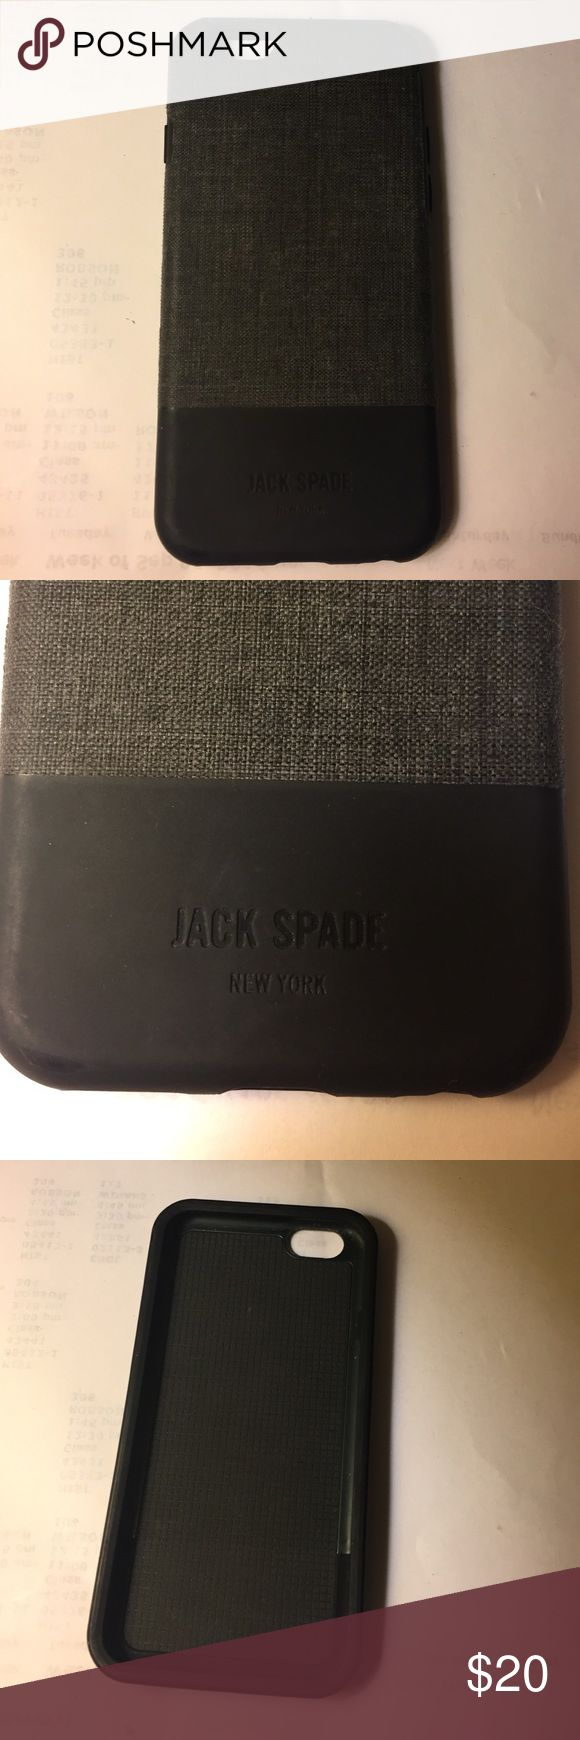 Jack Spade iPhone 6 case Barley used looks brand new. Jake Spade. Fabric on top and black silicon on the bottom Jack Spade Accessories Phone Cases